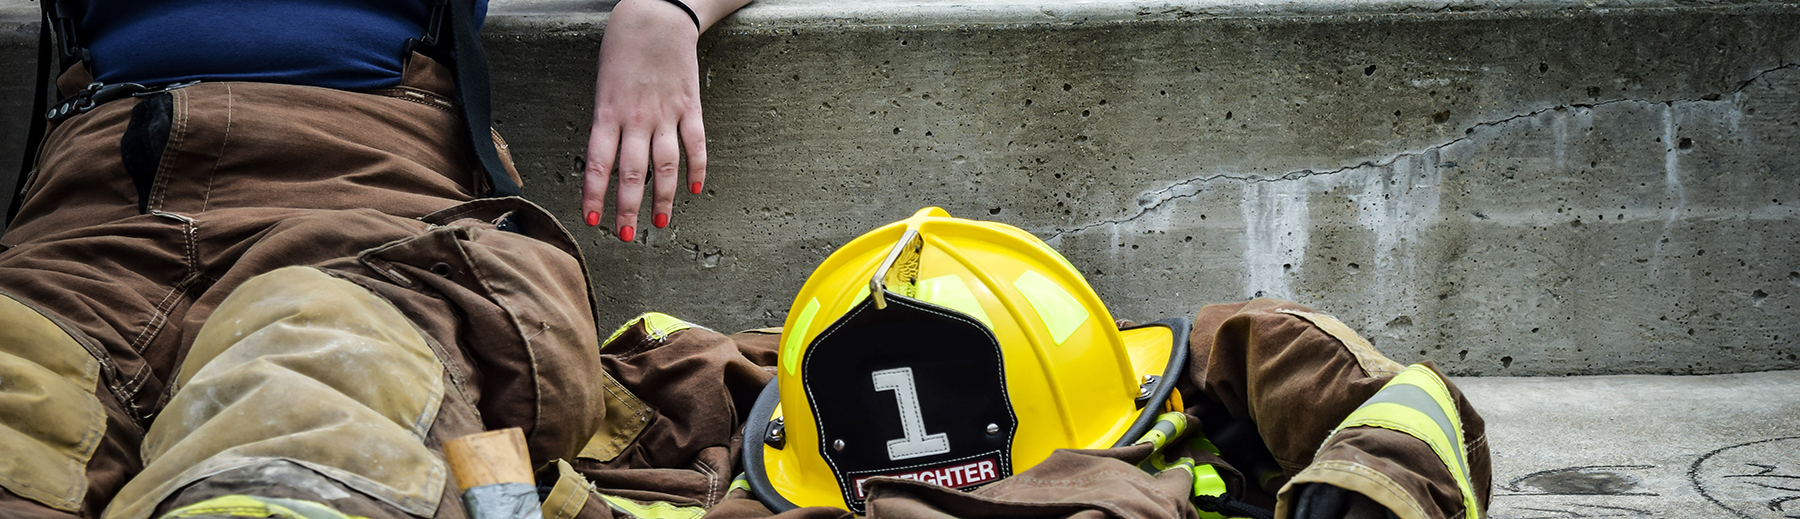 A firefighter rests beside her equipment